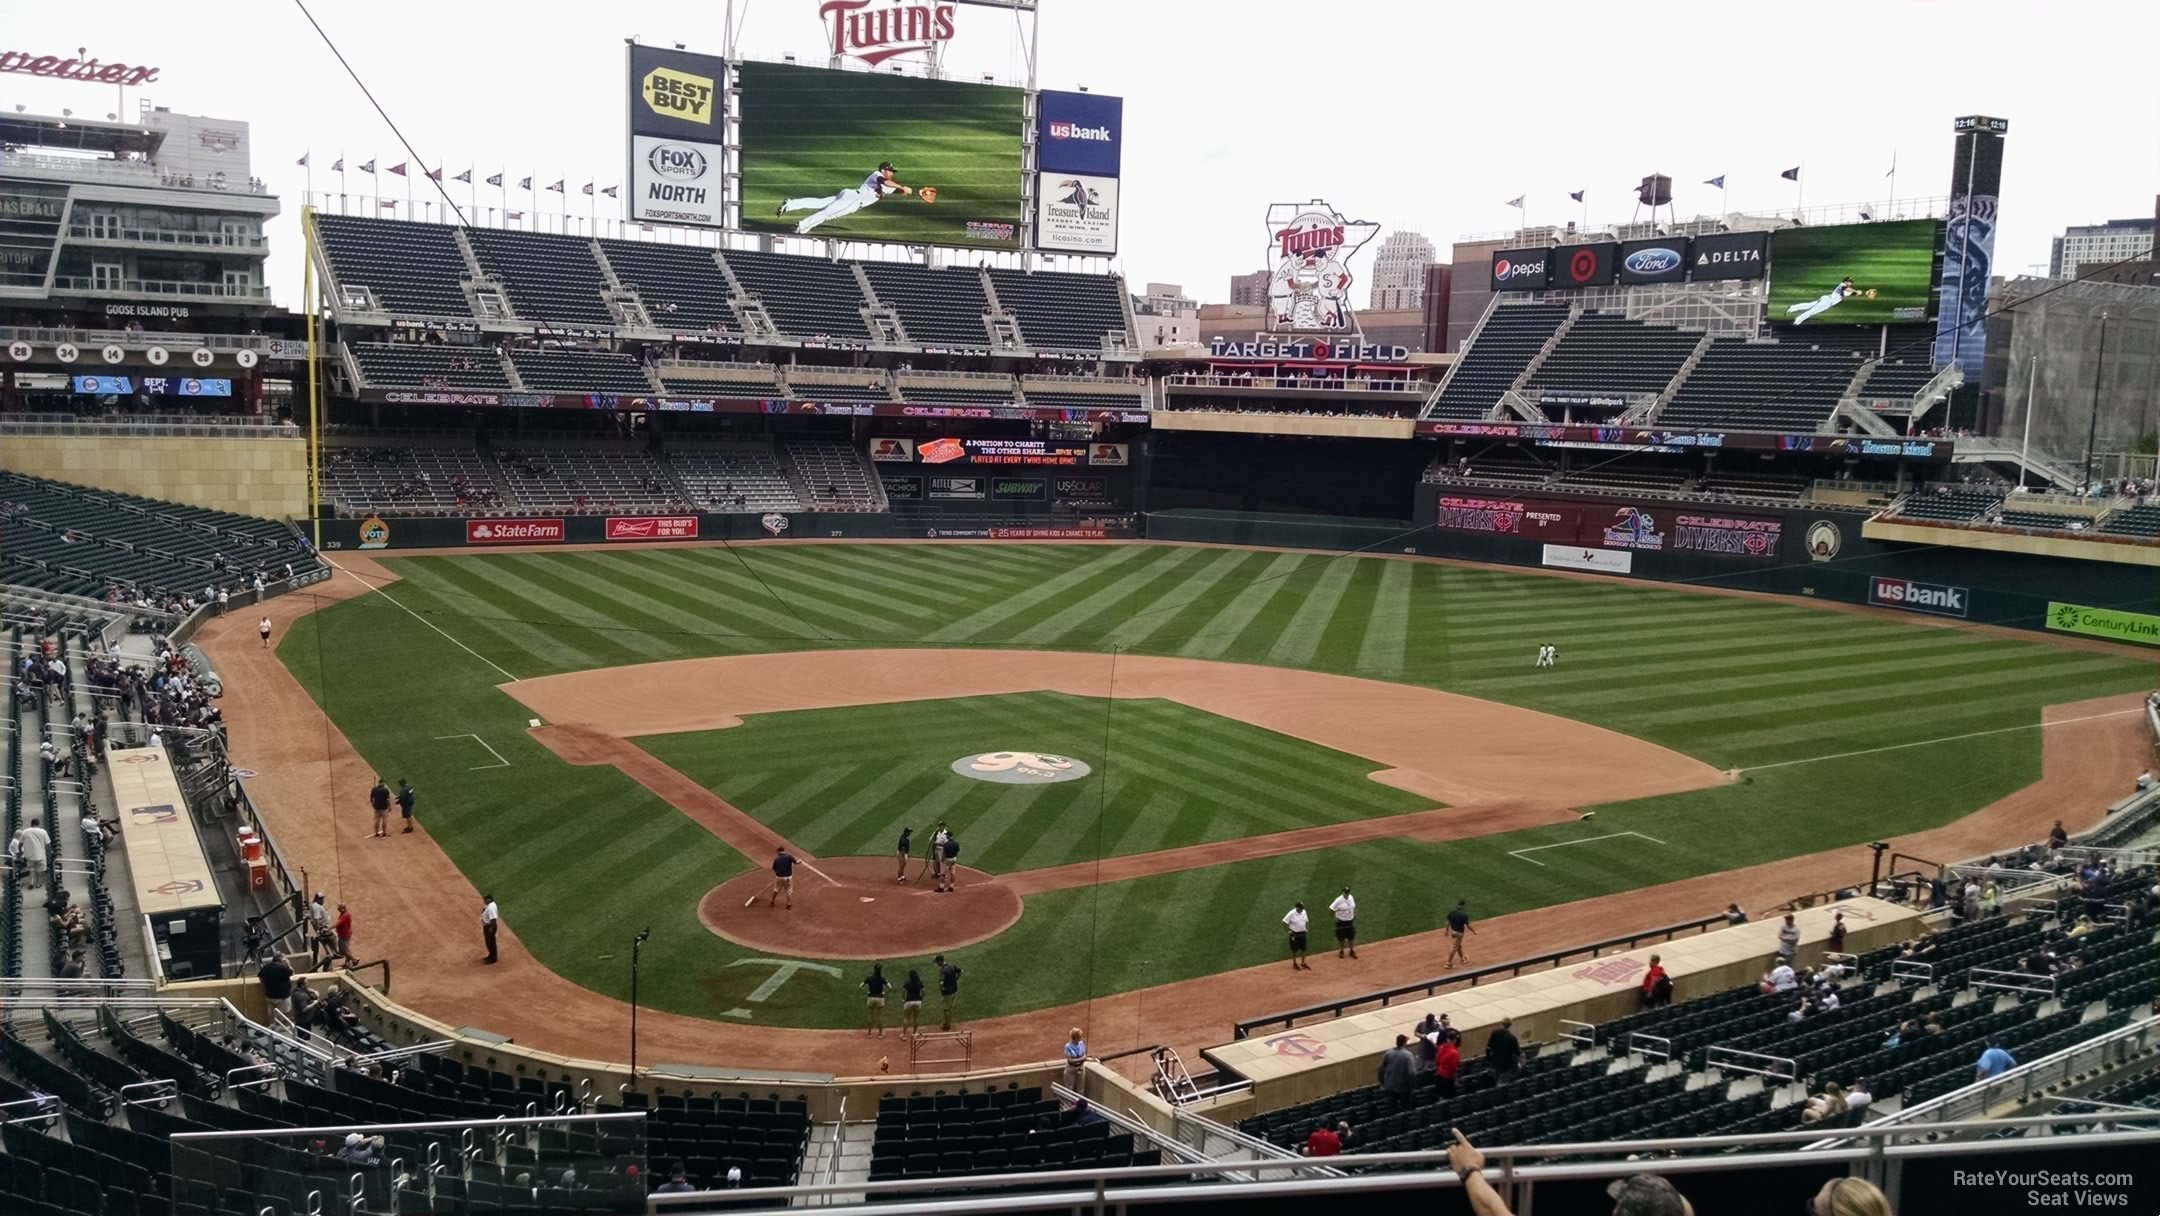 Target Field Section F - RateYourSeats.com